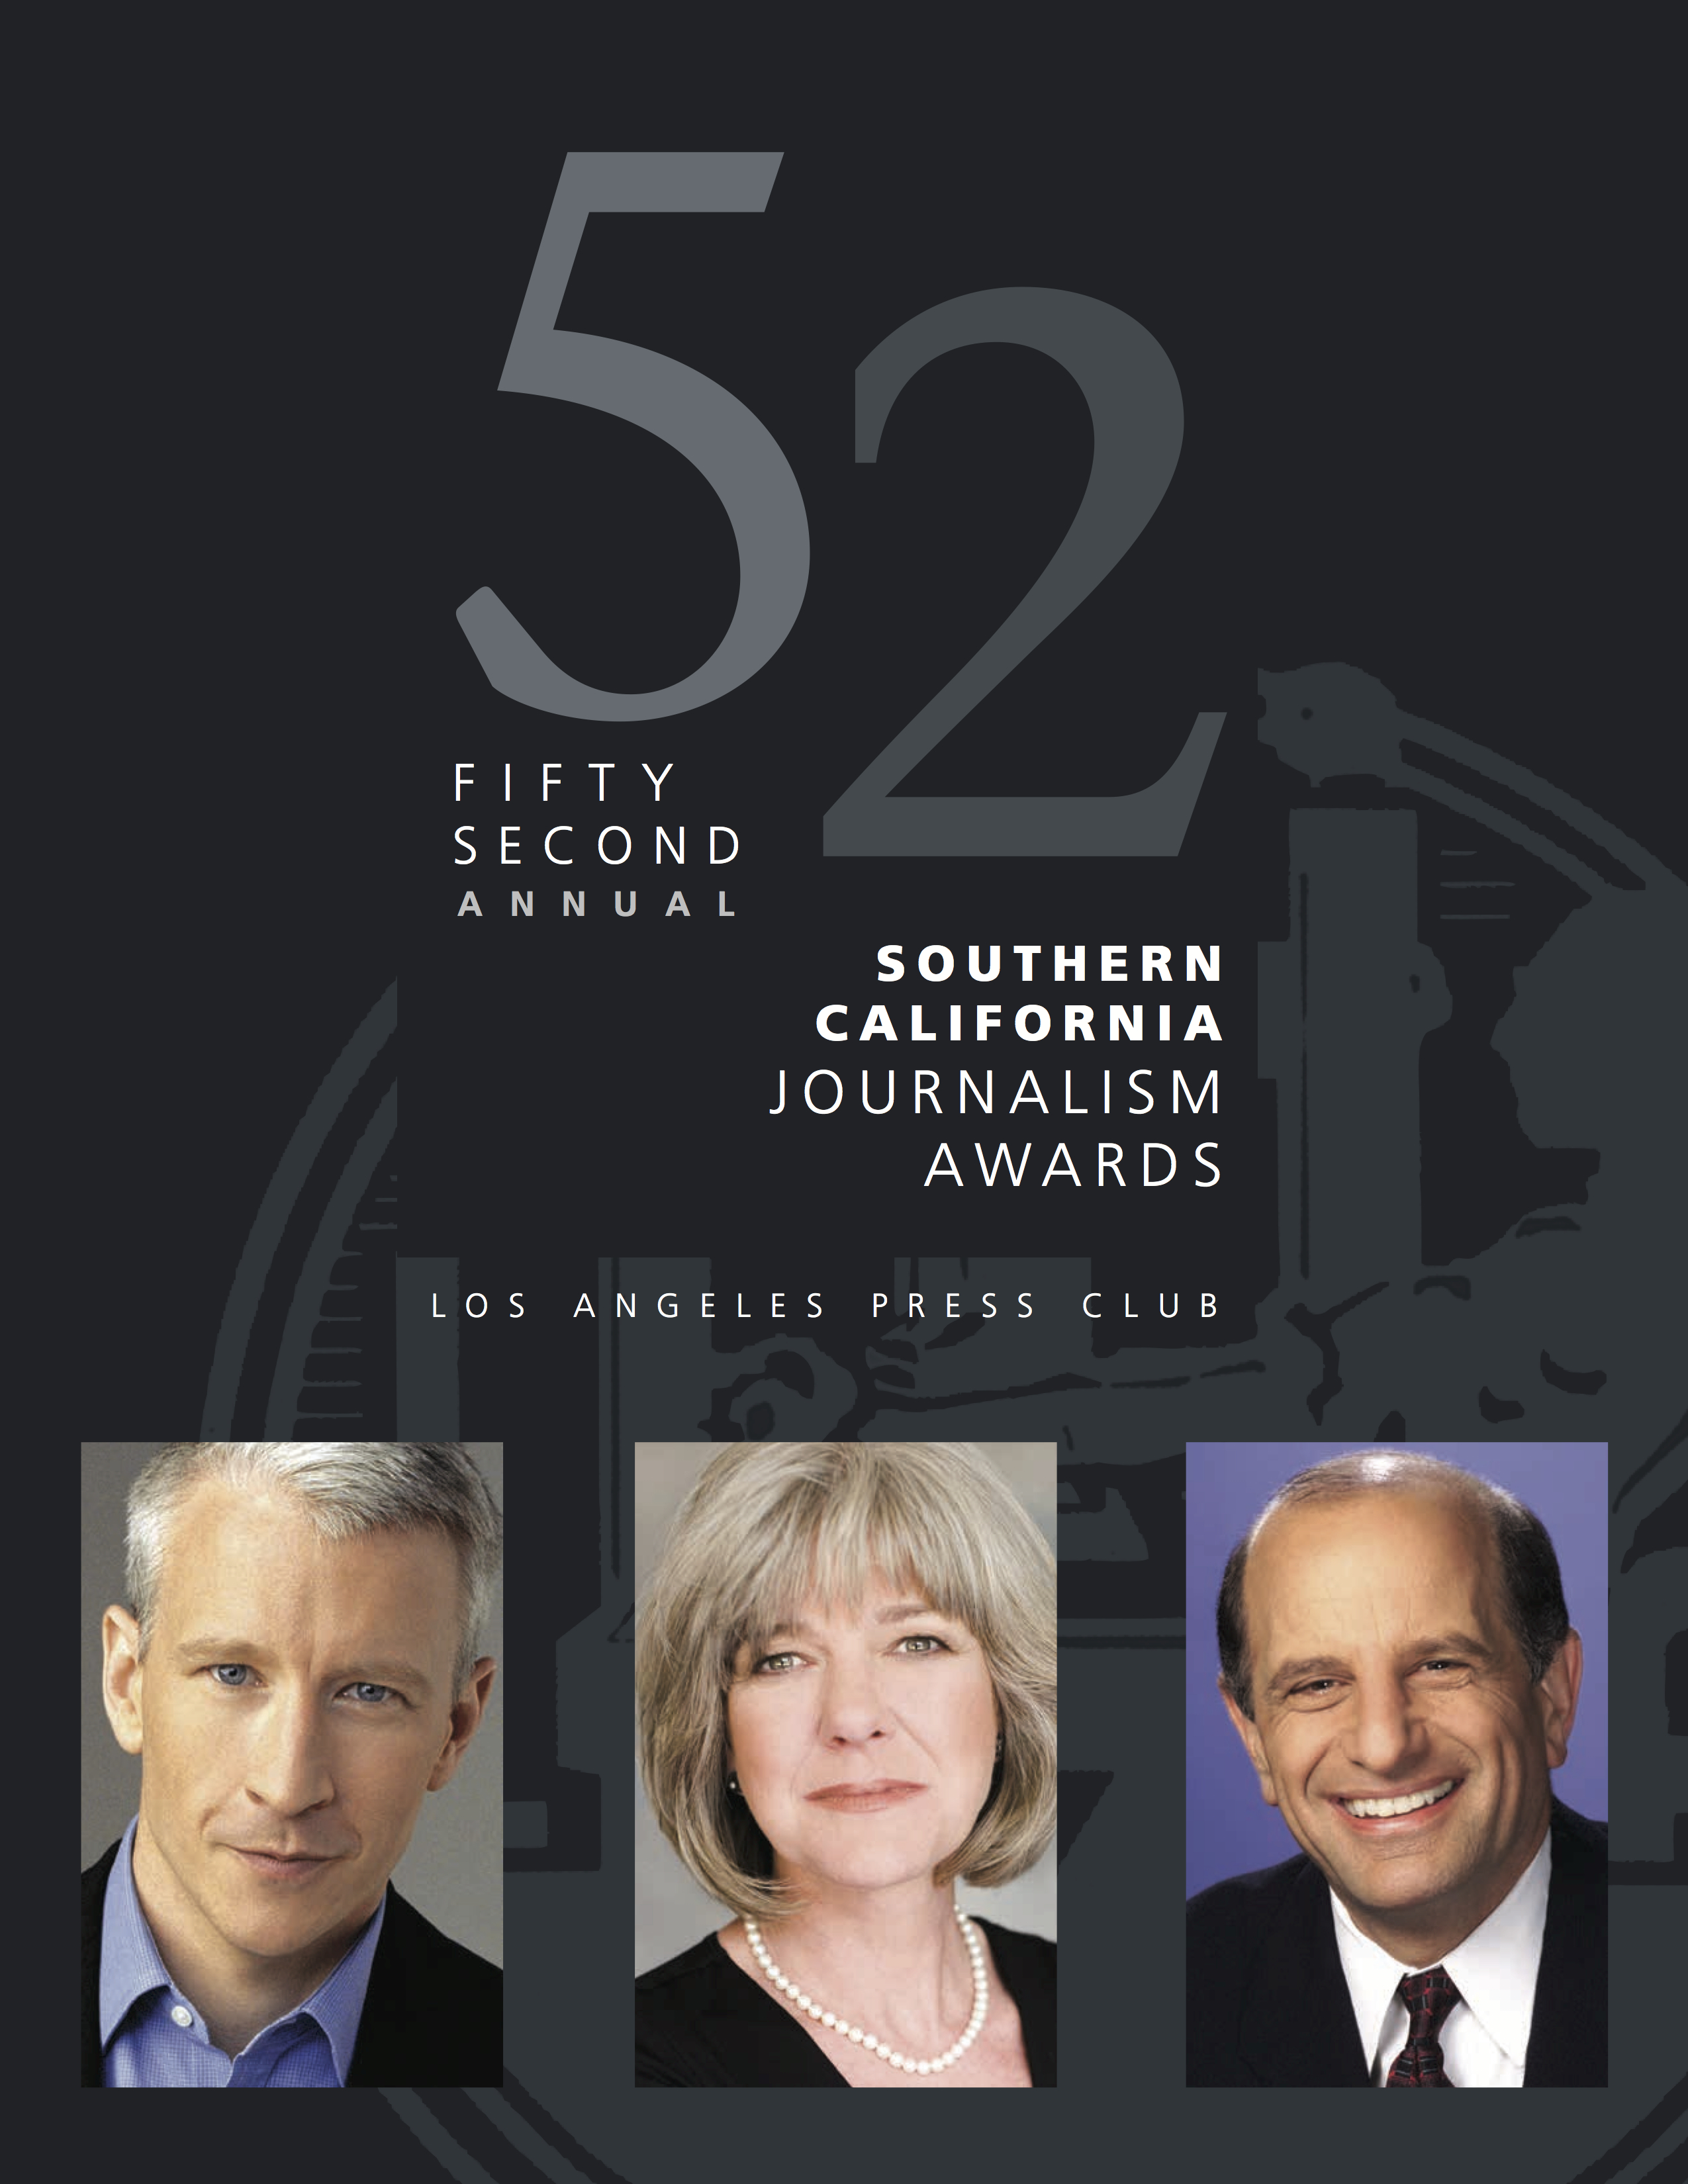 2010 SOCAL COVER